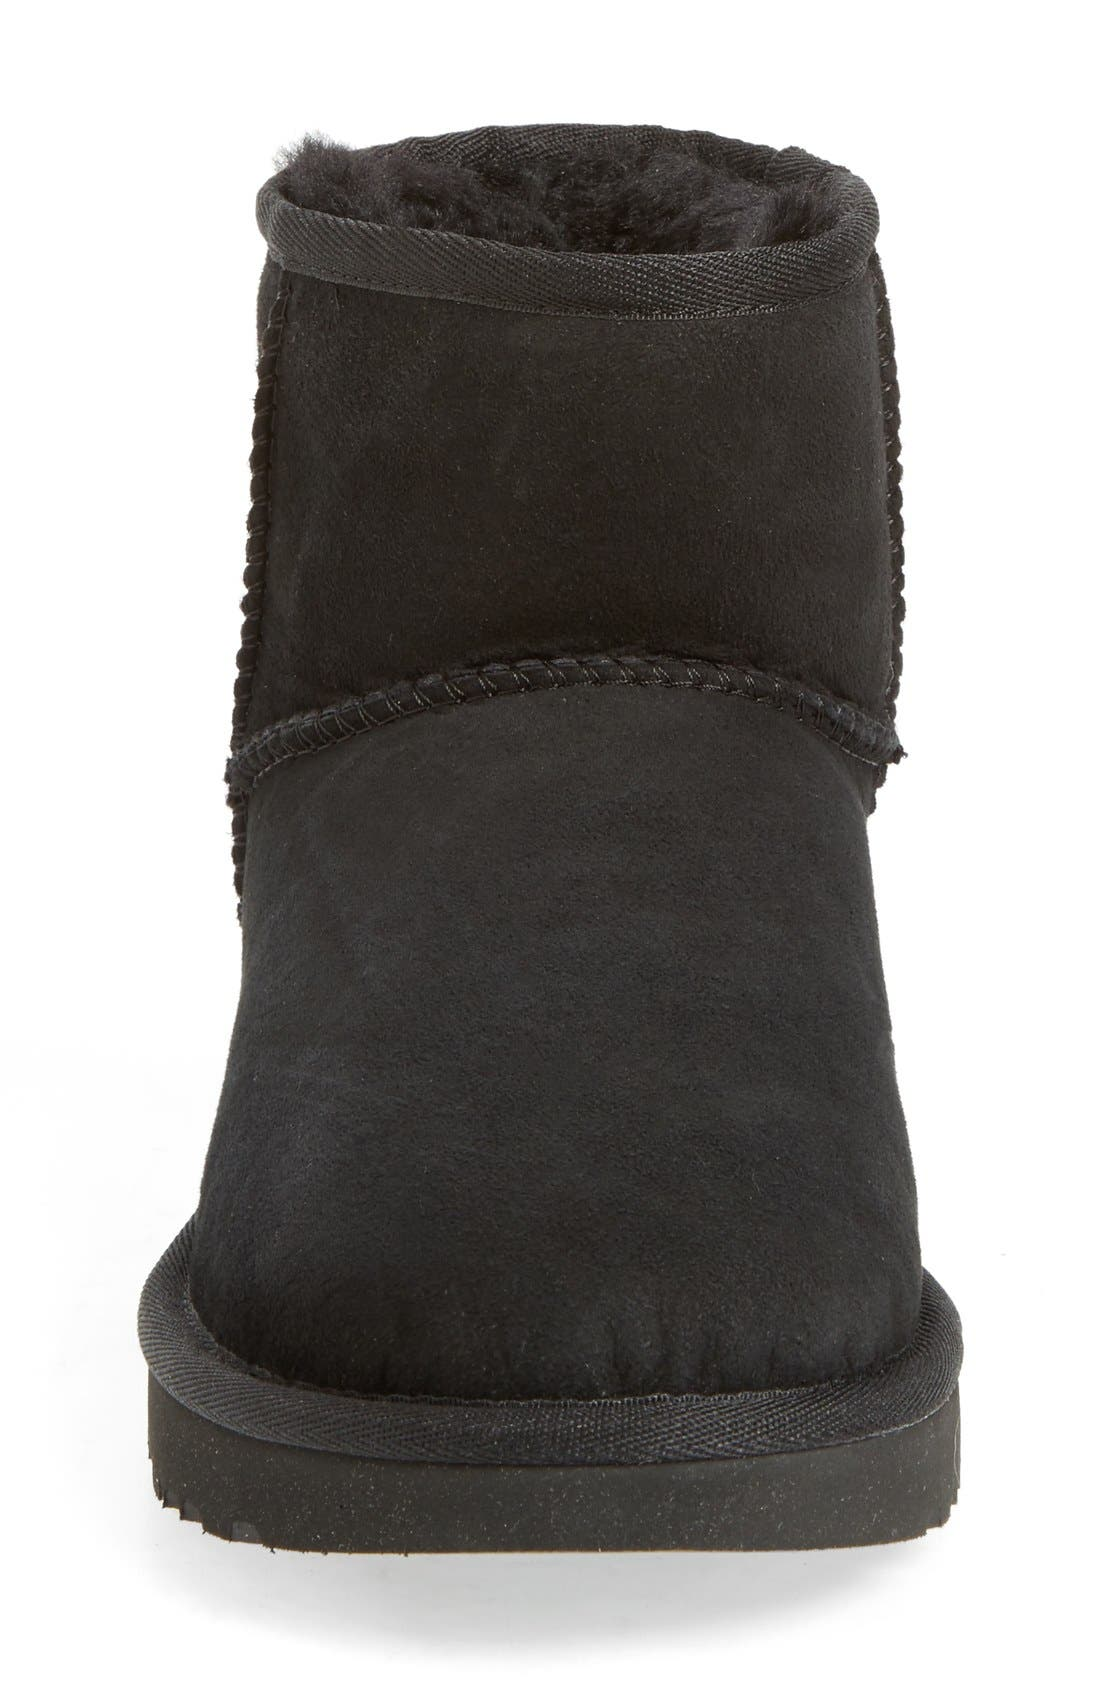 UGG<SUP>®</SUP>, Classic Mini II Genuine Shearling Lined Boot, Alternate thumbnail 4, color, BLACK SUEDE